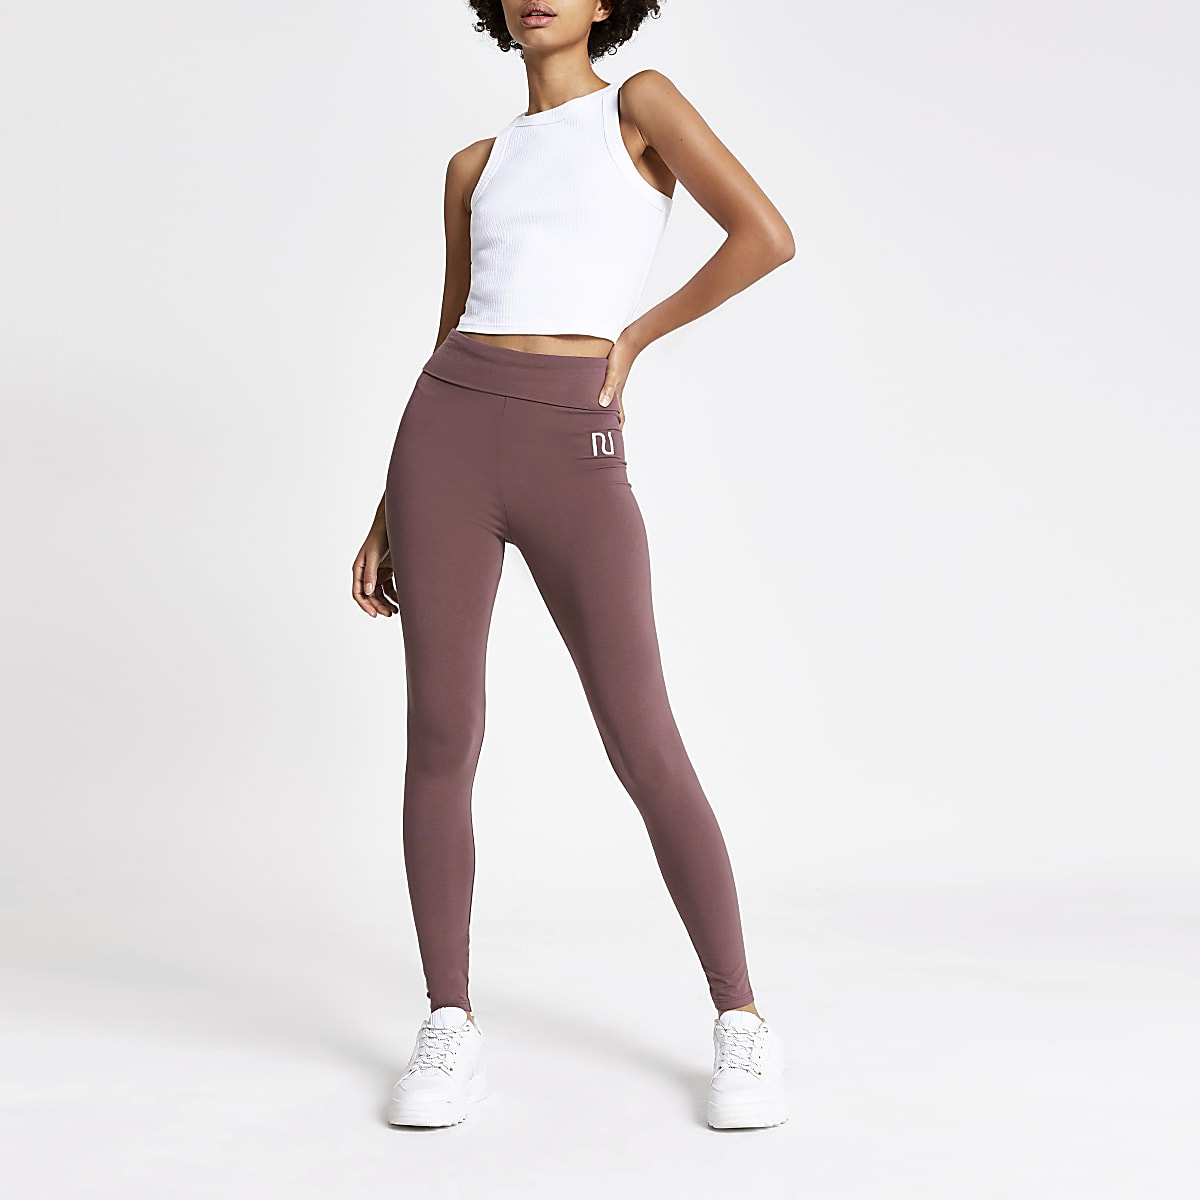 Dark pink RI high waisted leggings